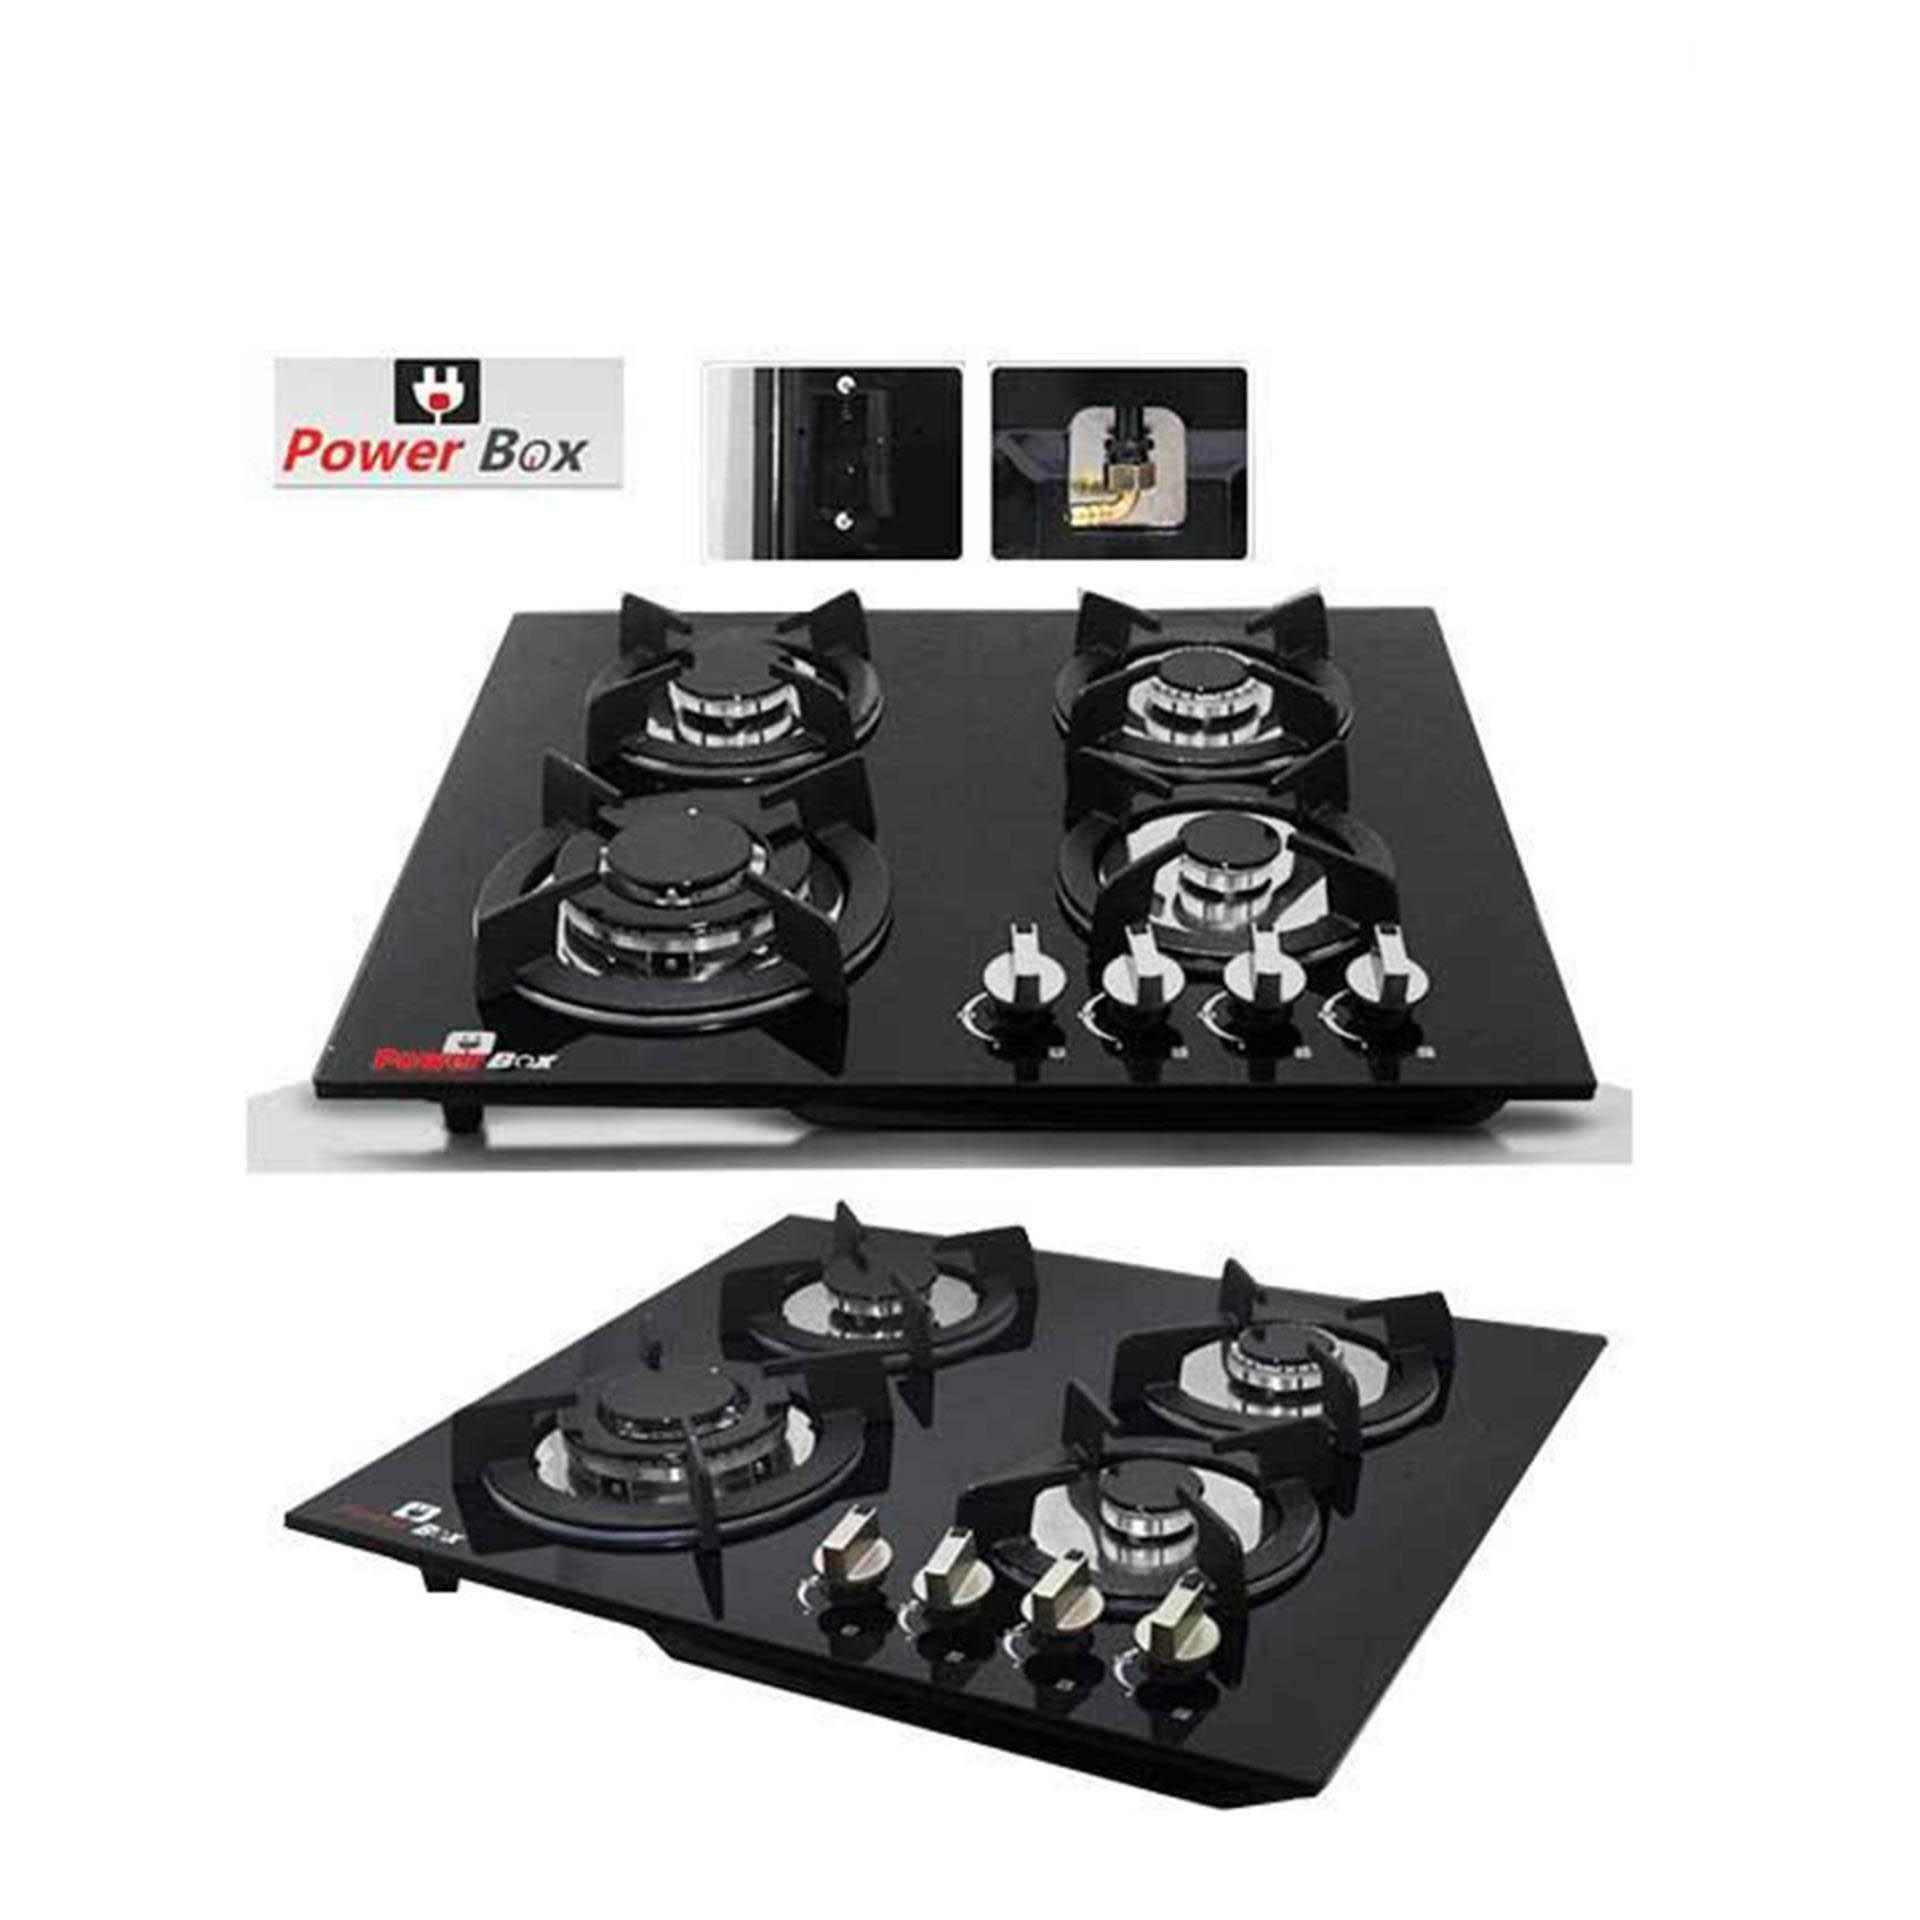 PowerBox Glass Top 4 Burner